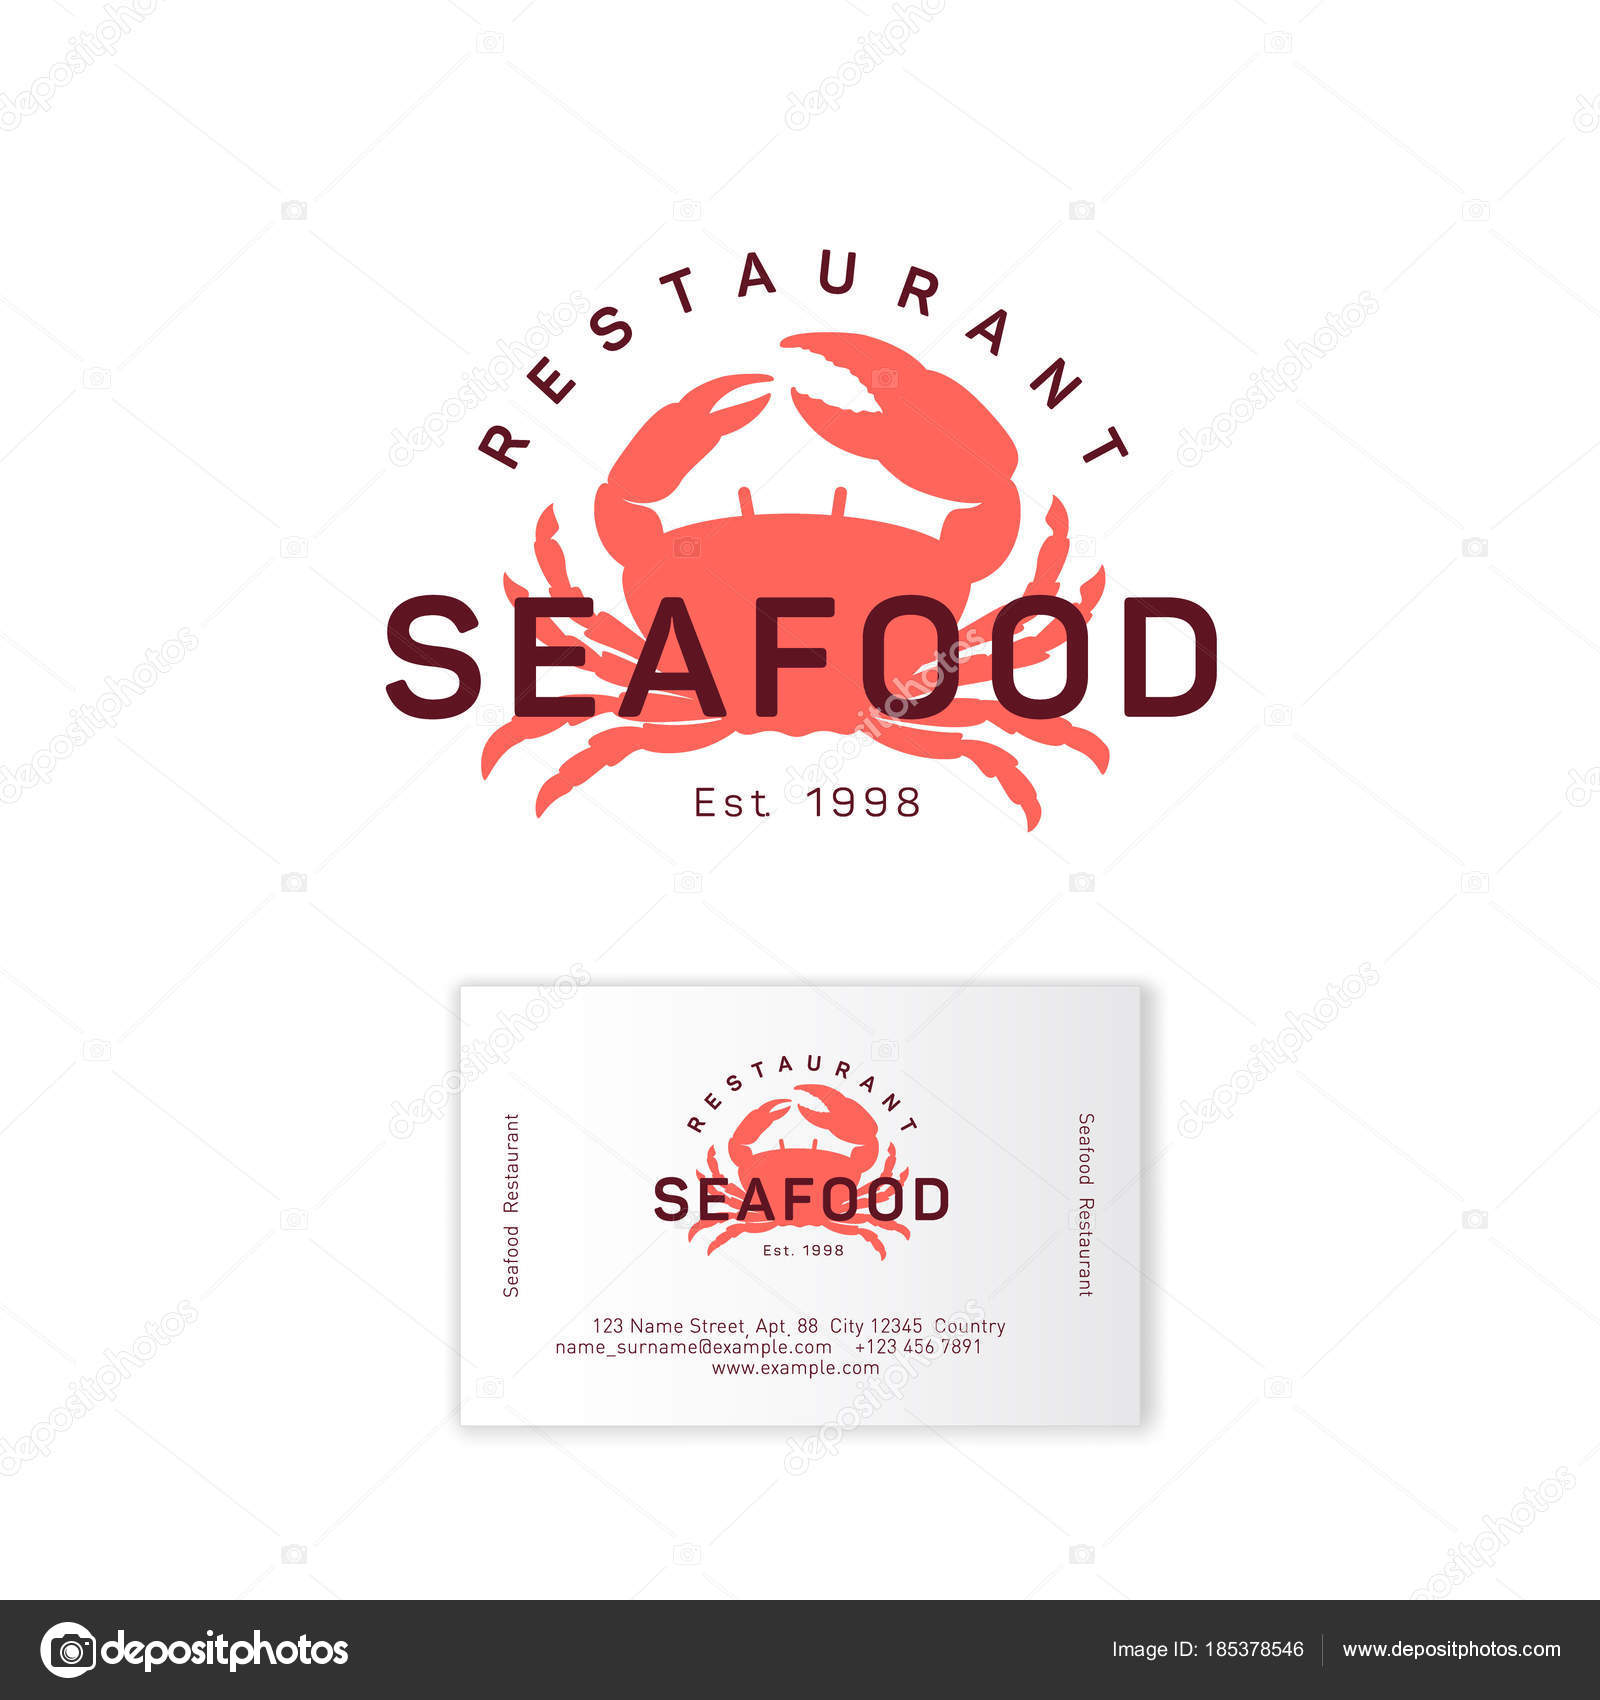 Seafood restaurant logo red crab silhouette emblem identity business seafood restaurant logo red crab silhouette emblem identity business card stock vector reheart Gallery